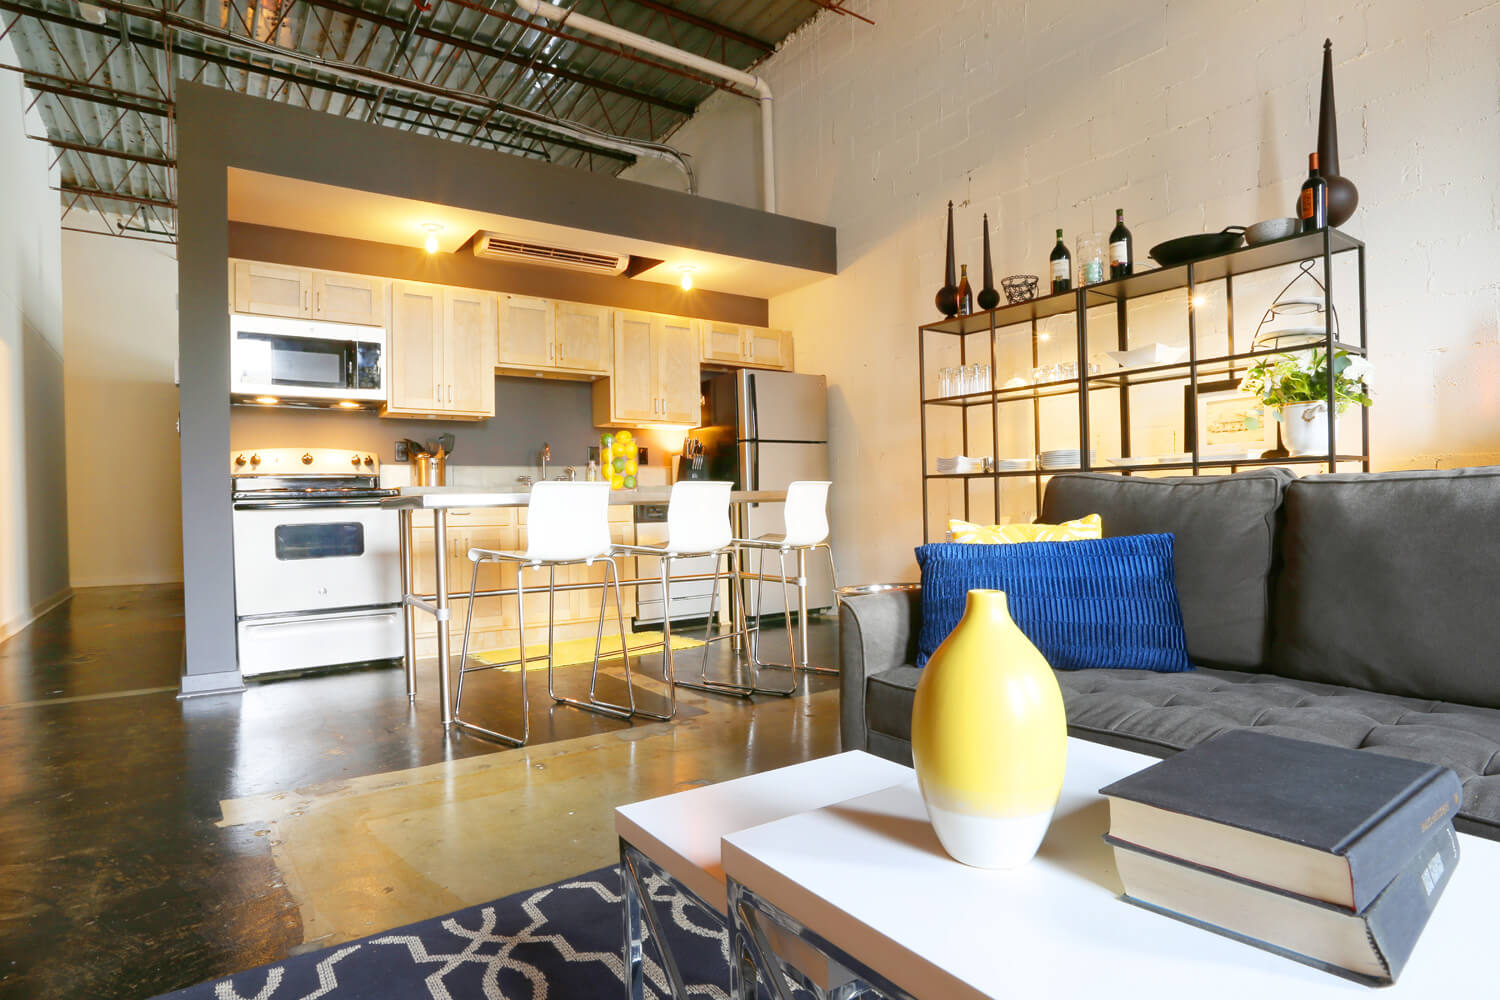 District 36 Lofts Designed by Foshee Architecture - Apartment Kitchen